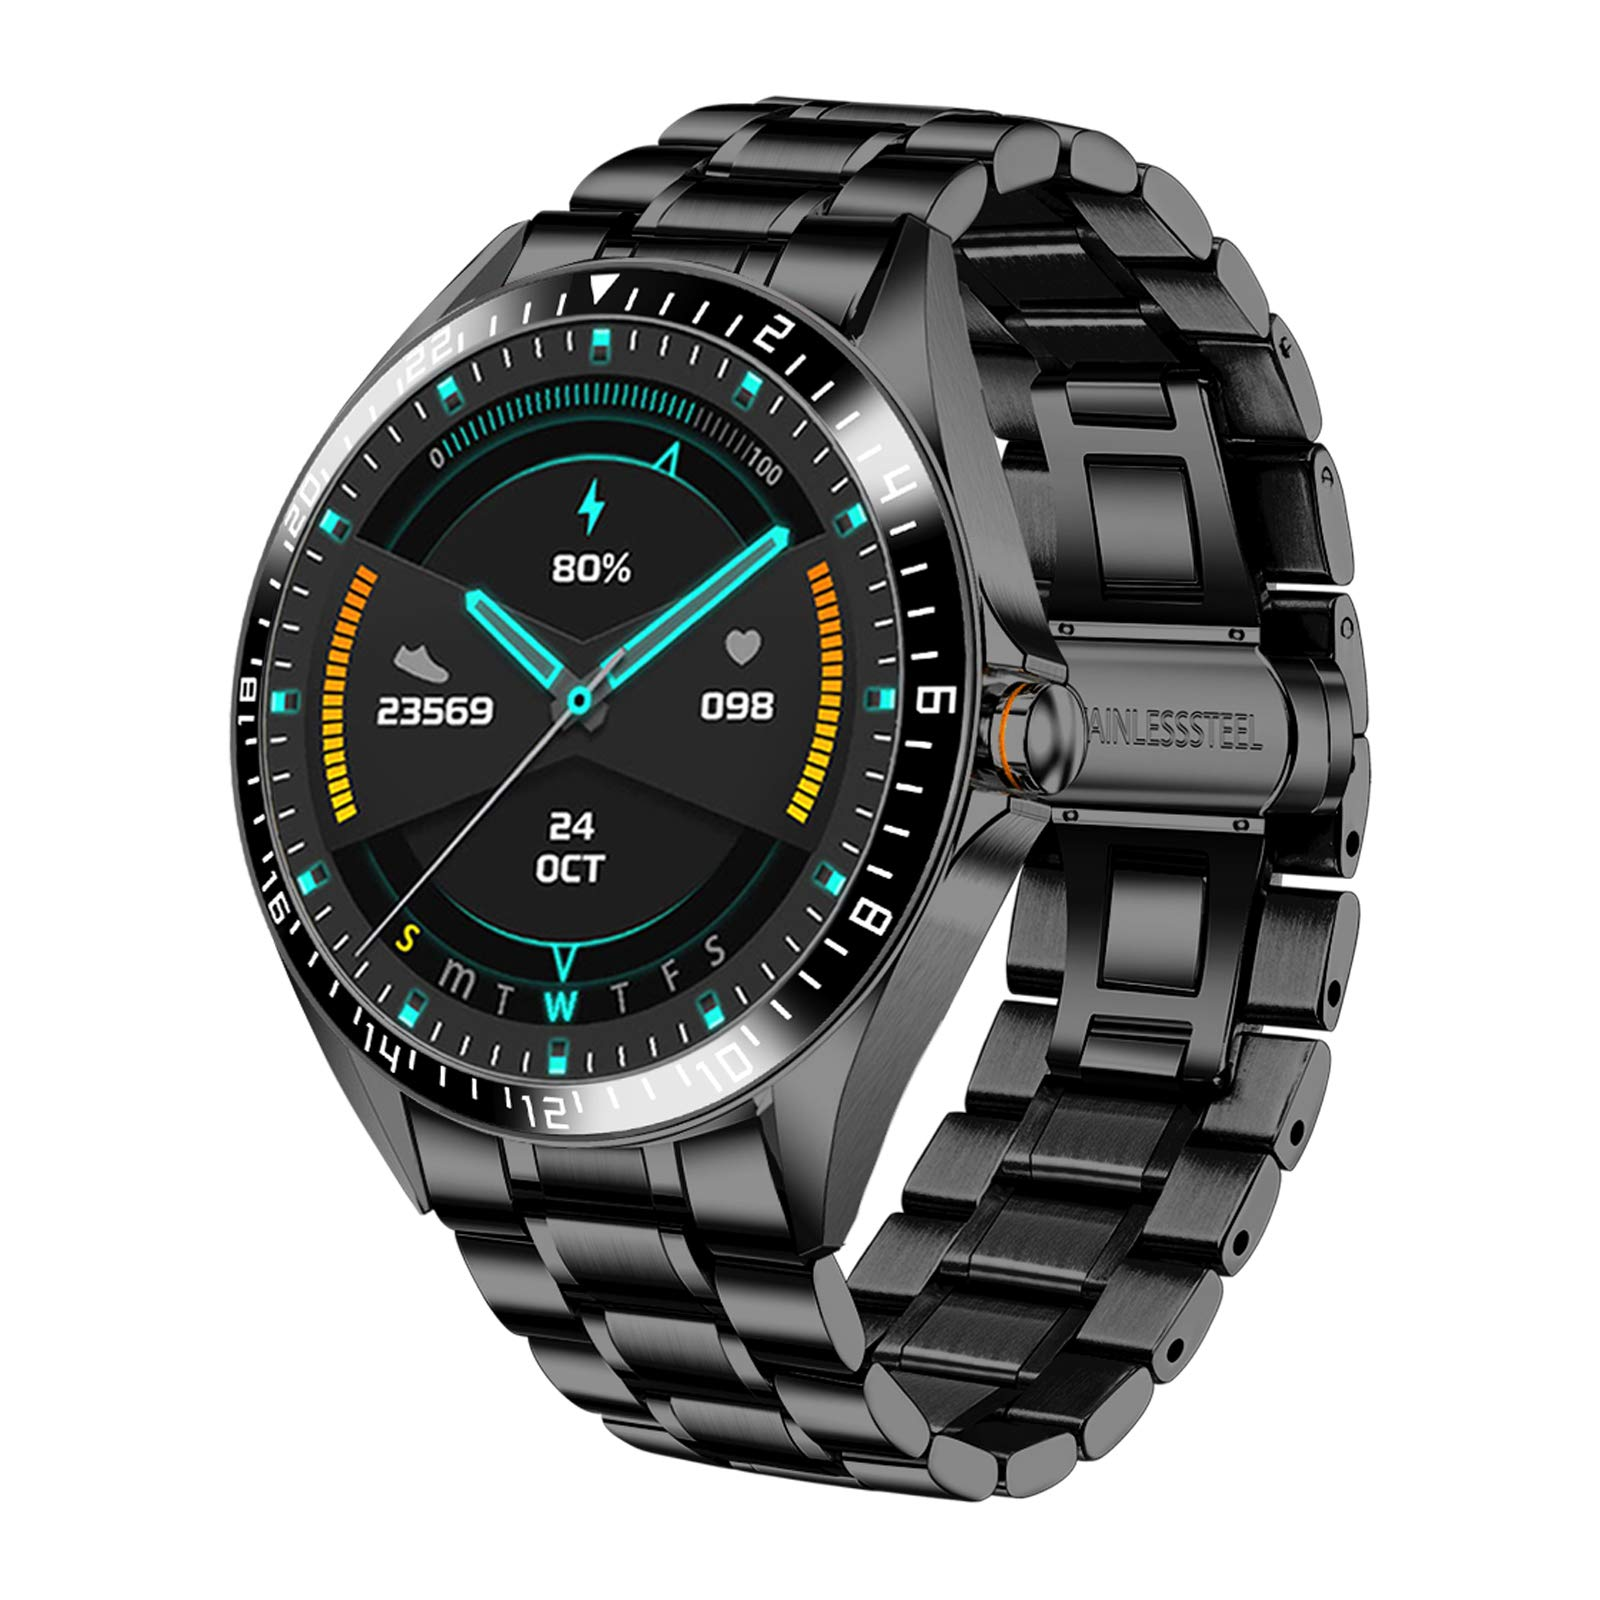 Smart Watch for Men Stylish, Fitness Trackers Waterproof with Heart Rate for Android iPhone, Sports Watch Bluetooth Remote Camera Pedometer Stainless Steel